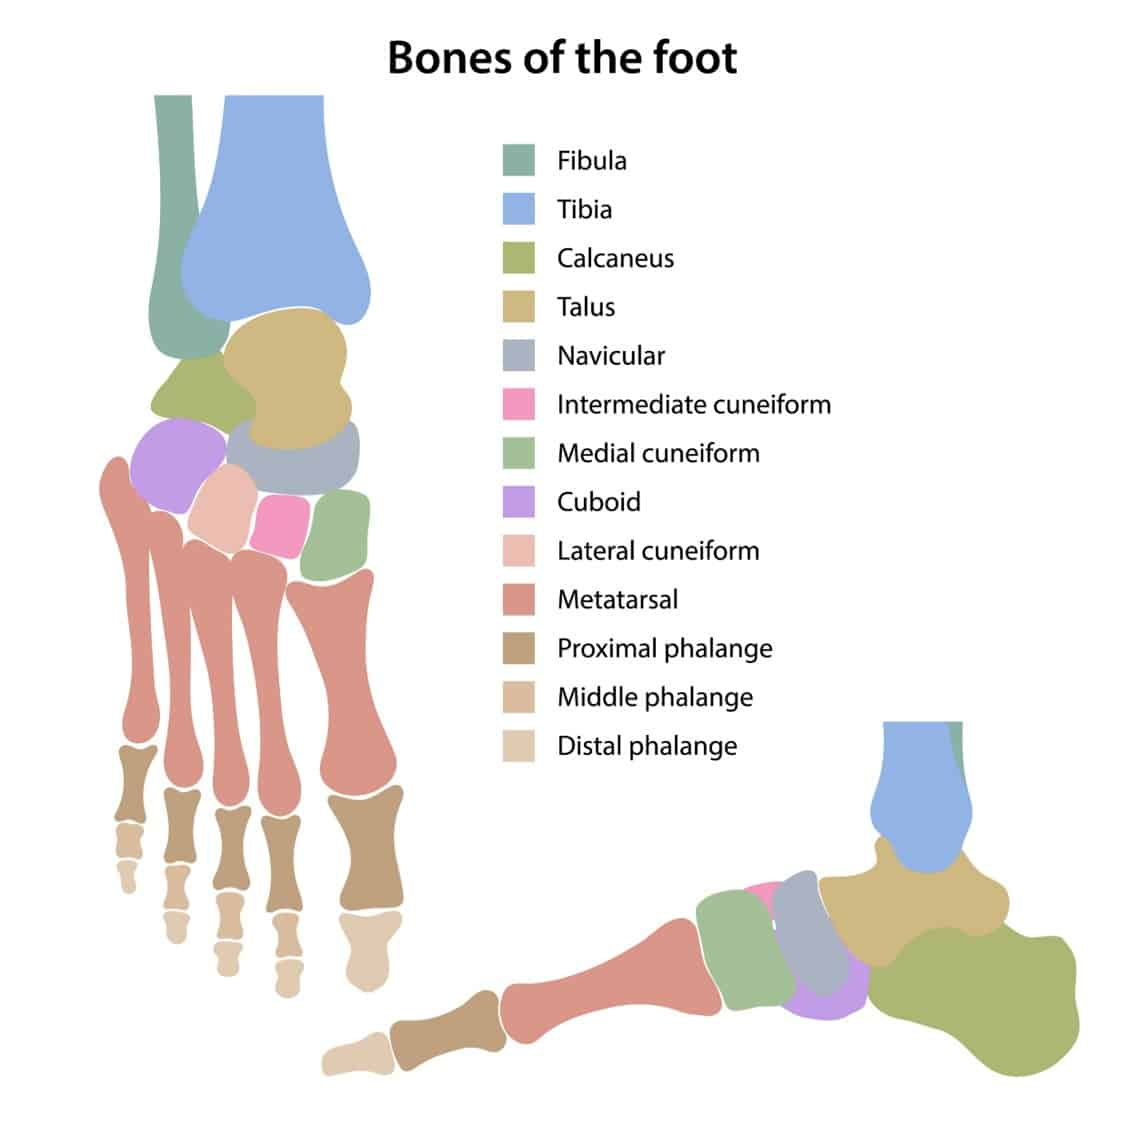 Bones of the foot illustration color coded front and side views